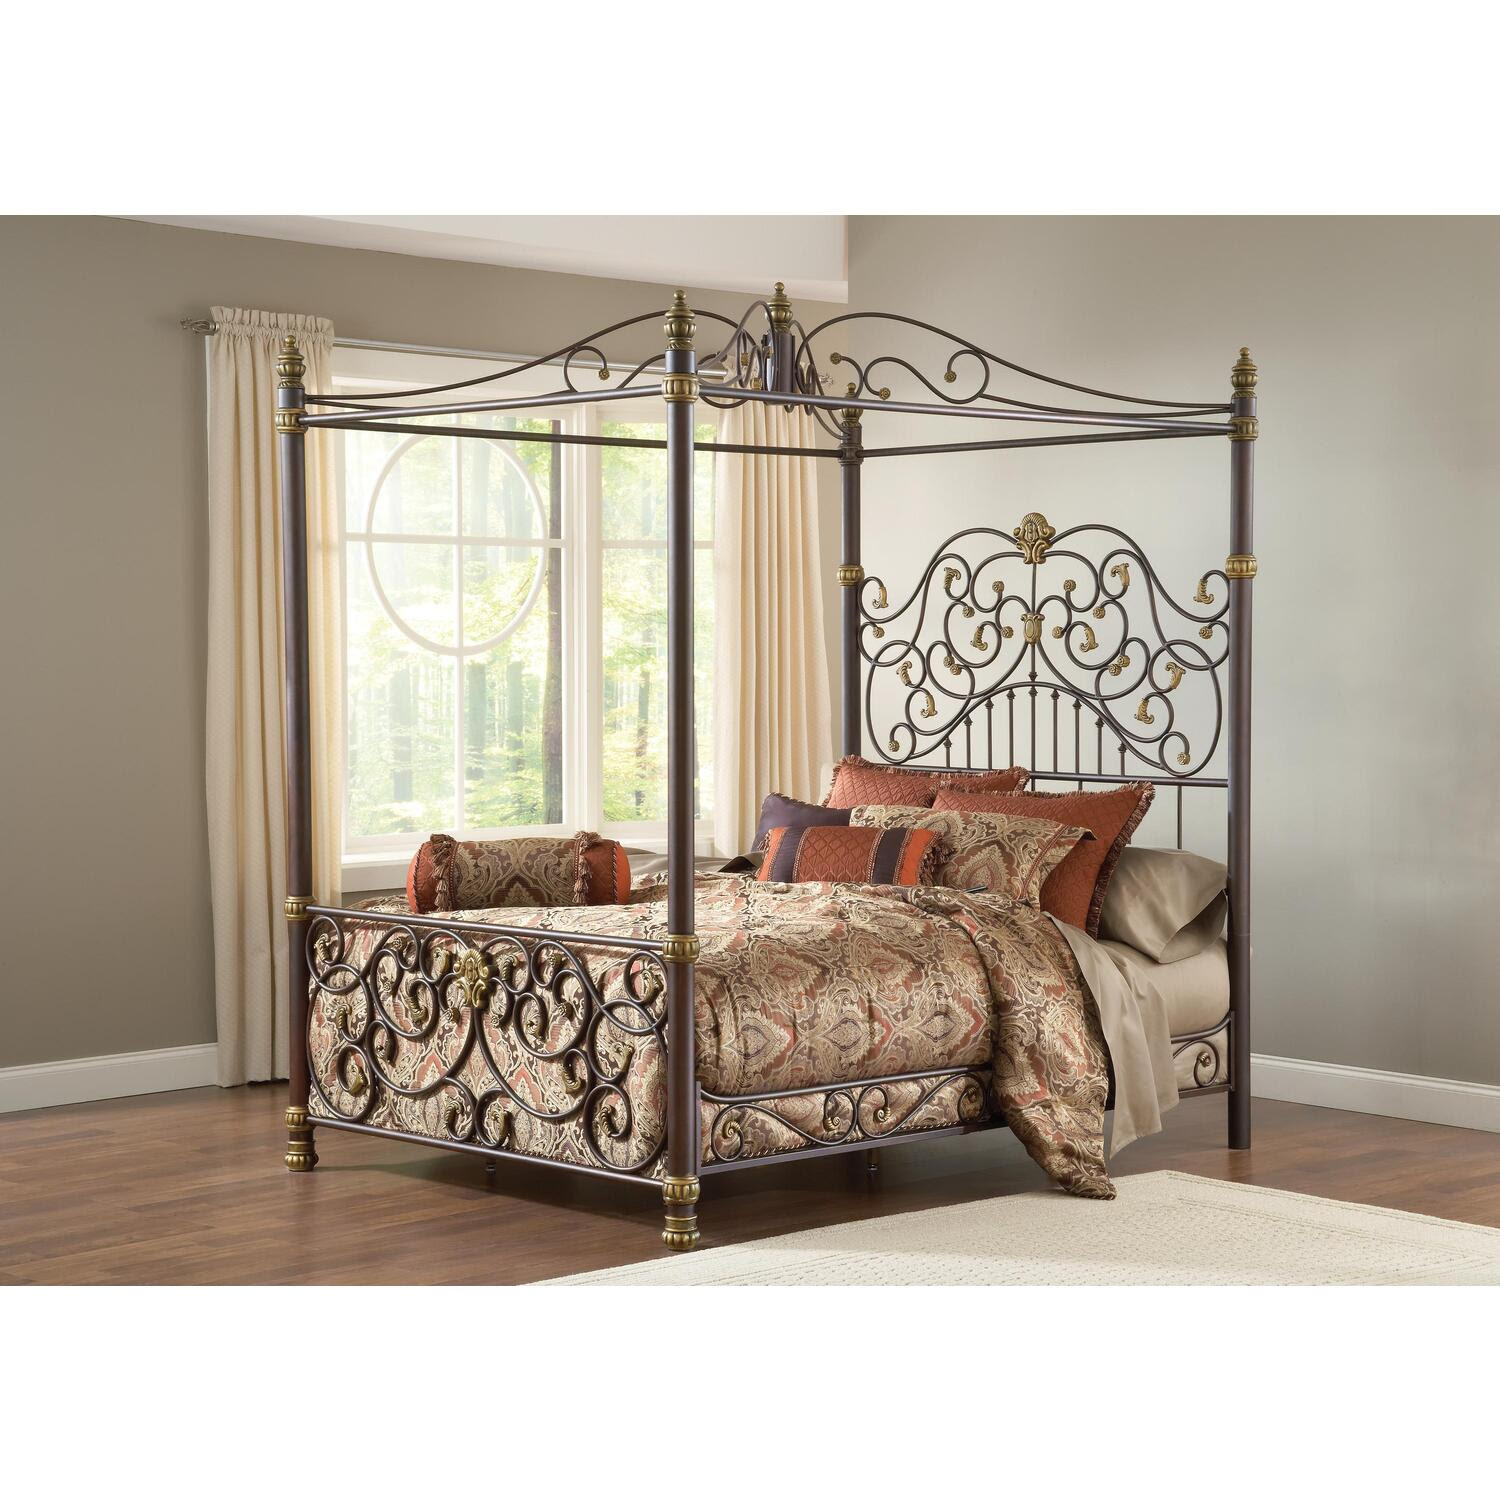 50 Cute Queen Size Bedroom Sets Free